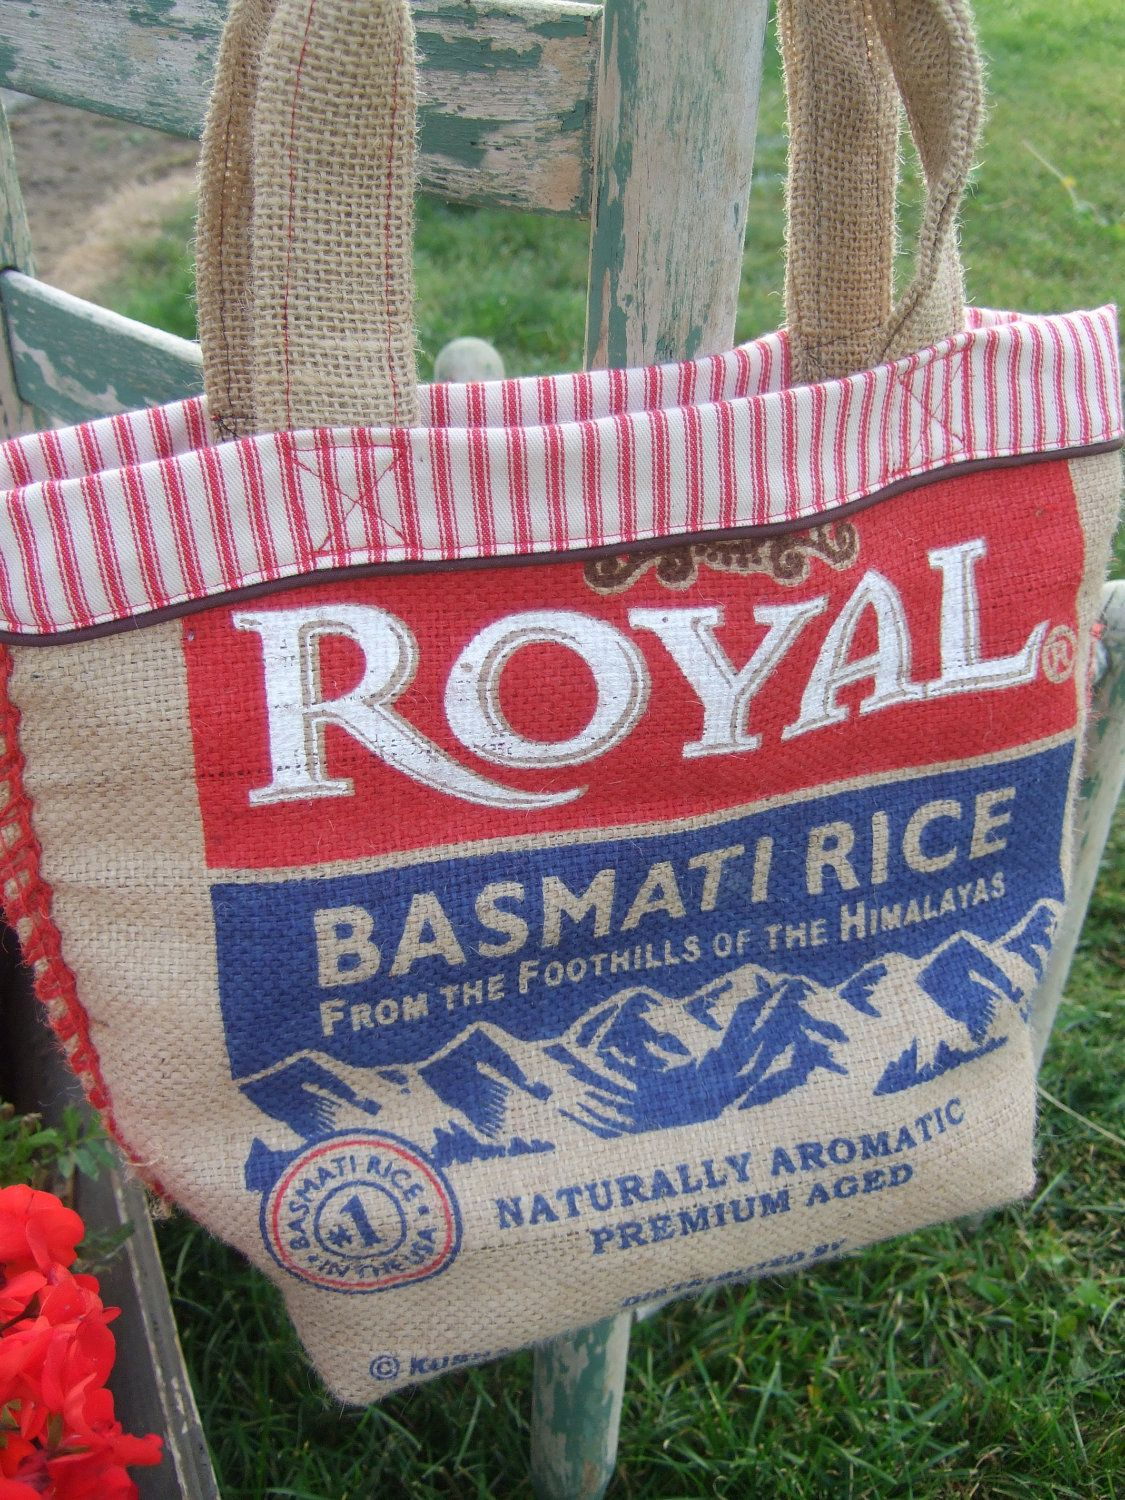 Recycled rice bag purse - Recycled Burlap And Red Basmatti Rice Bag Tote Bag Upcycled